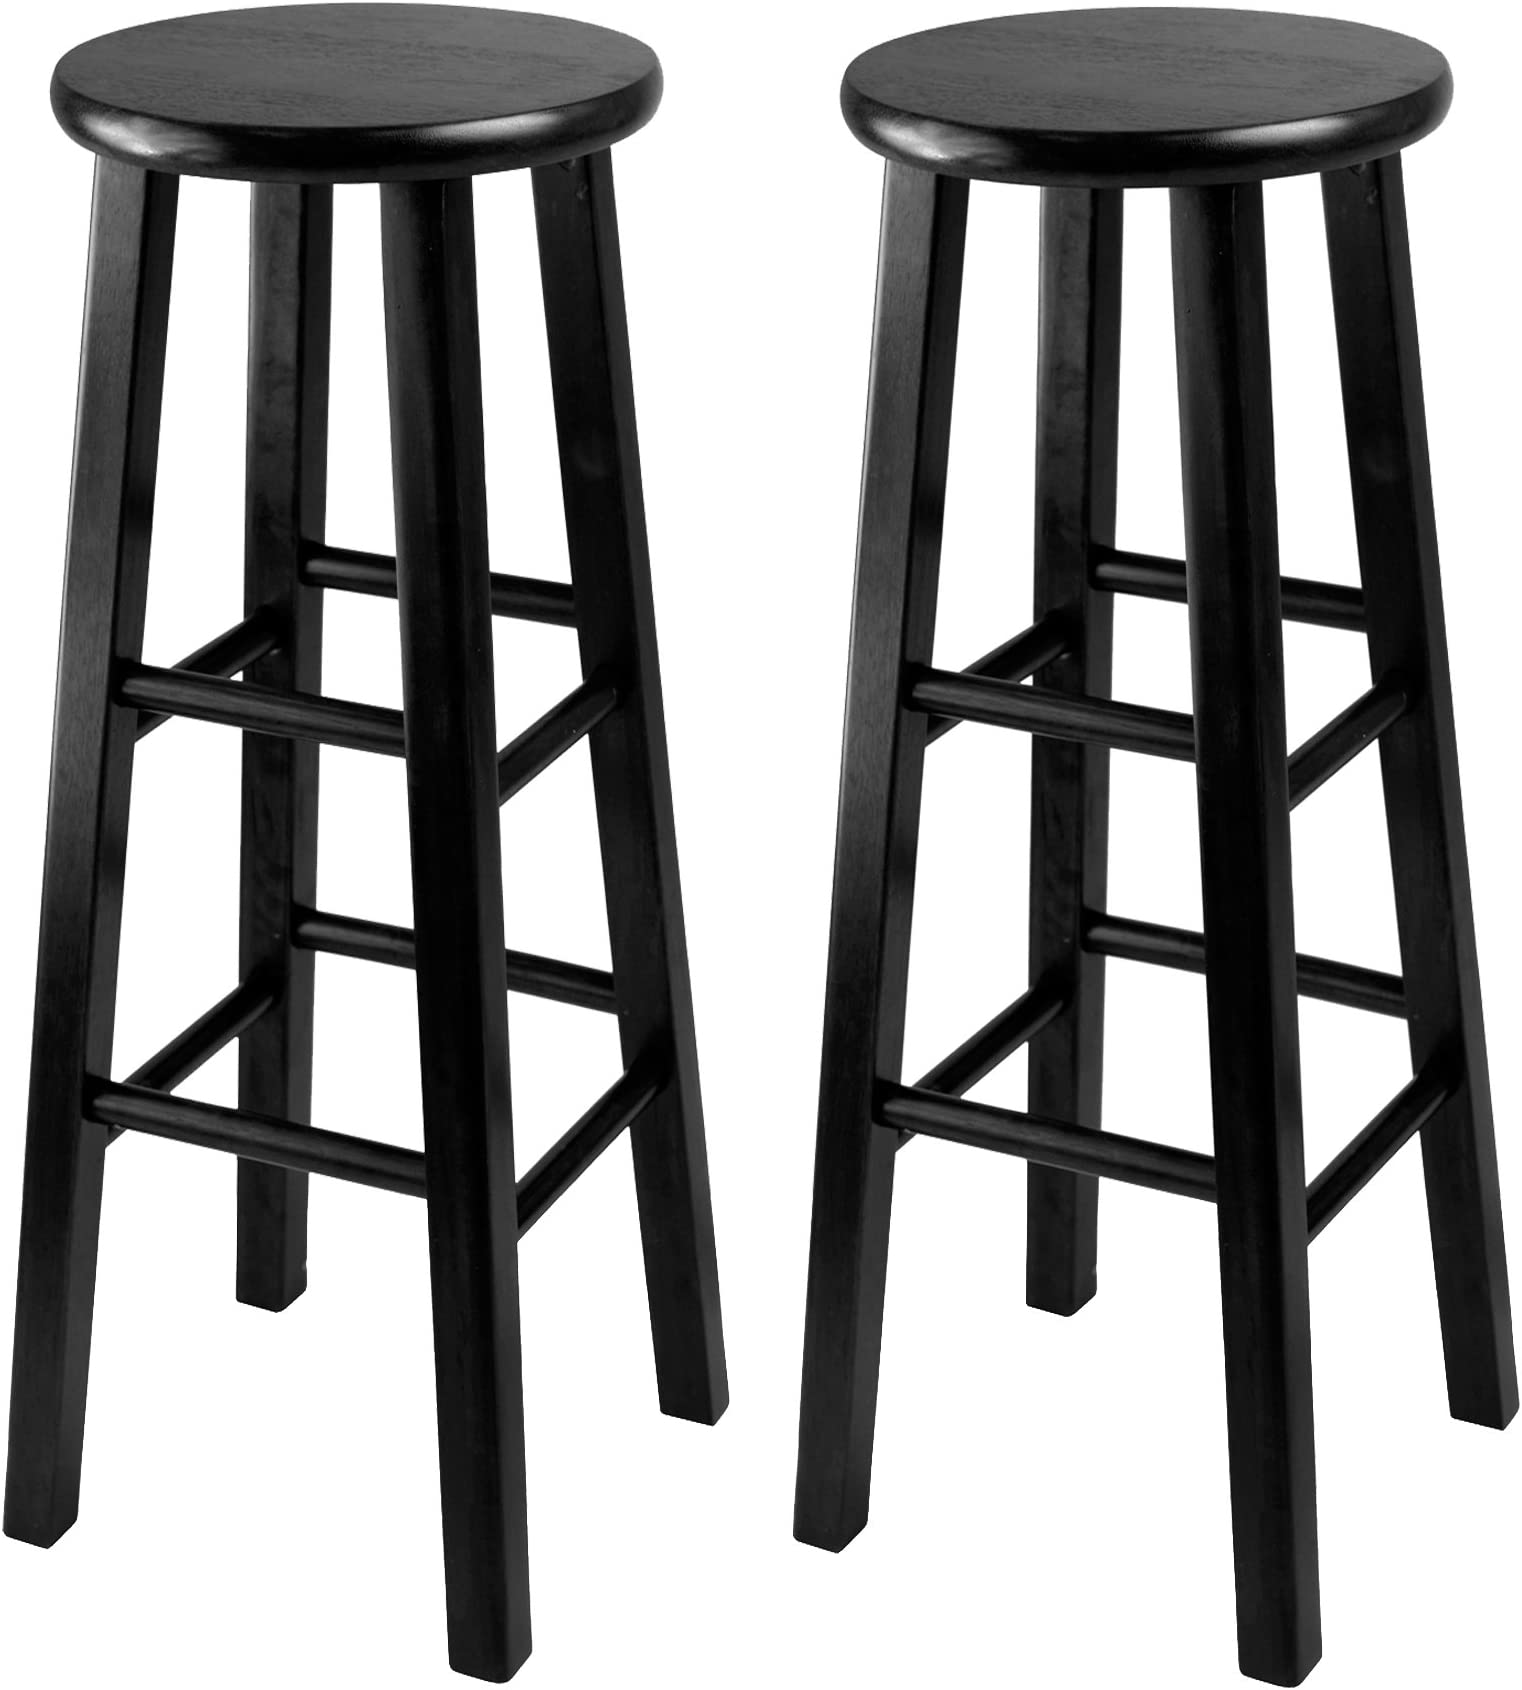 Winsome 29-Inch Square Leg Bar Stool Black Set of 2  sc 1 st  Amazon.com : wooden bar stools with backs - islam-shia.org